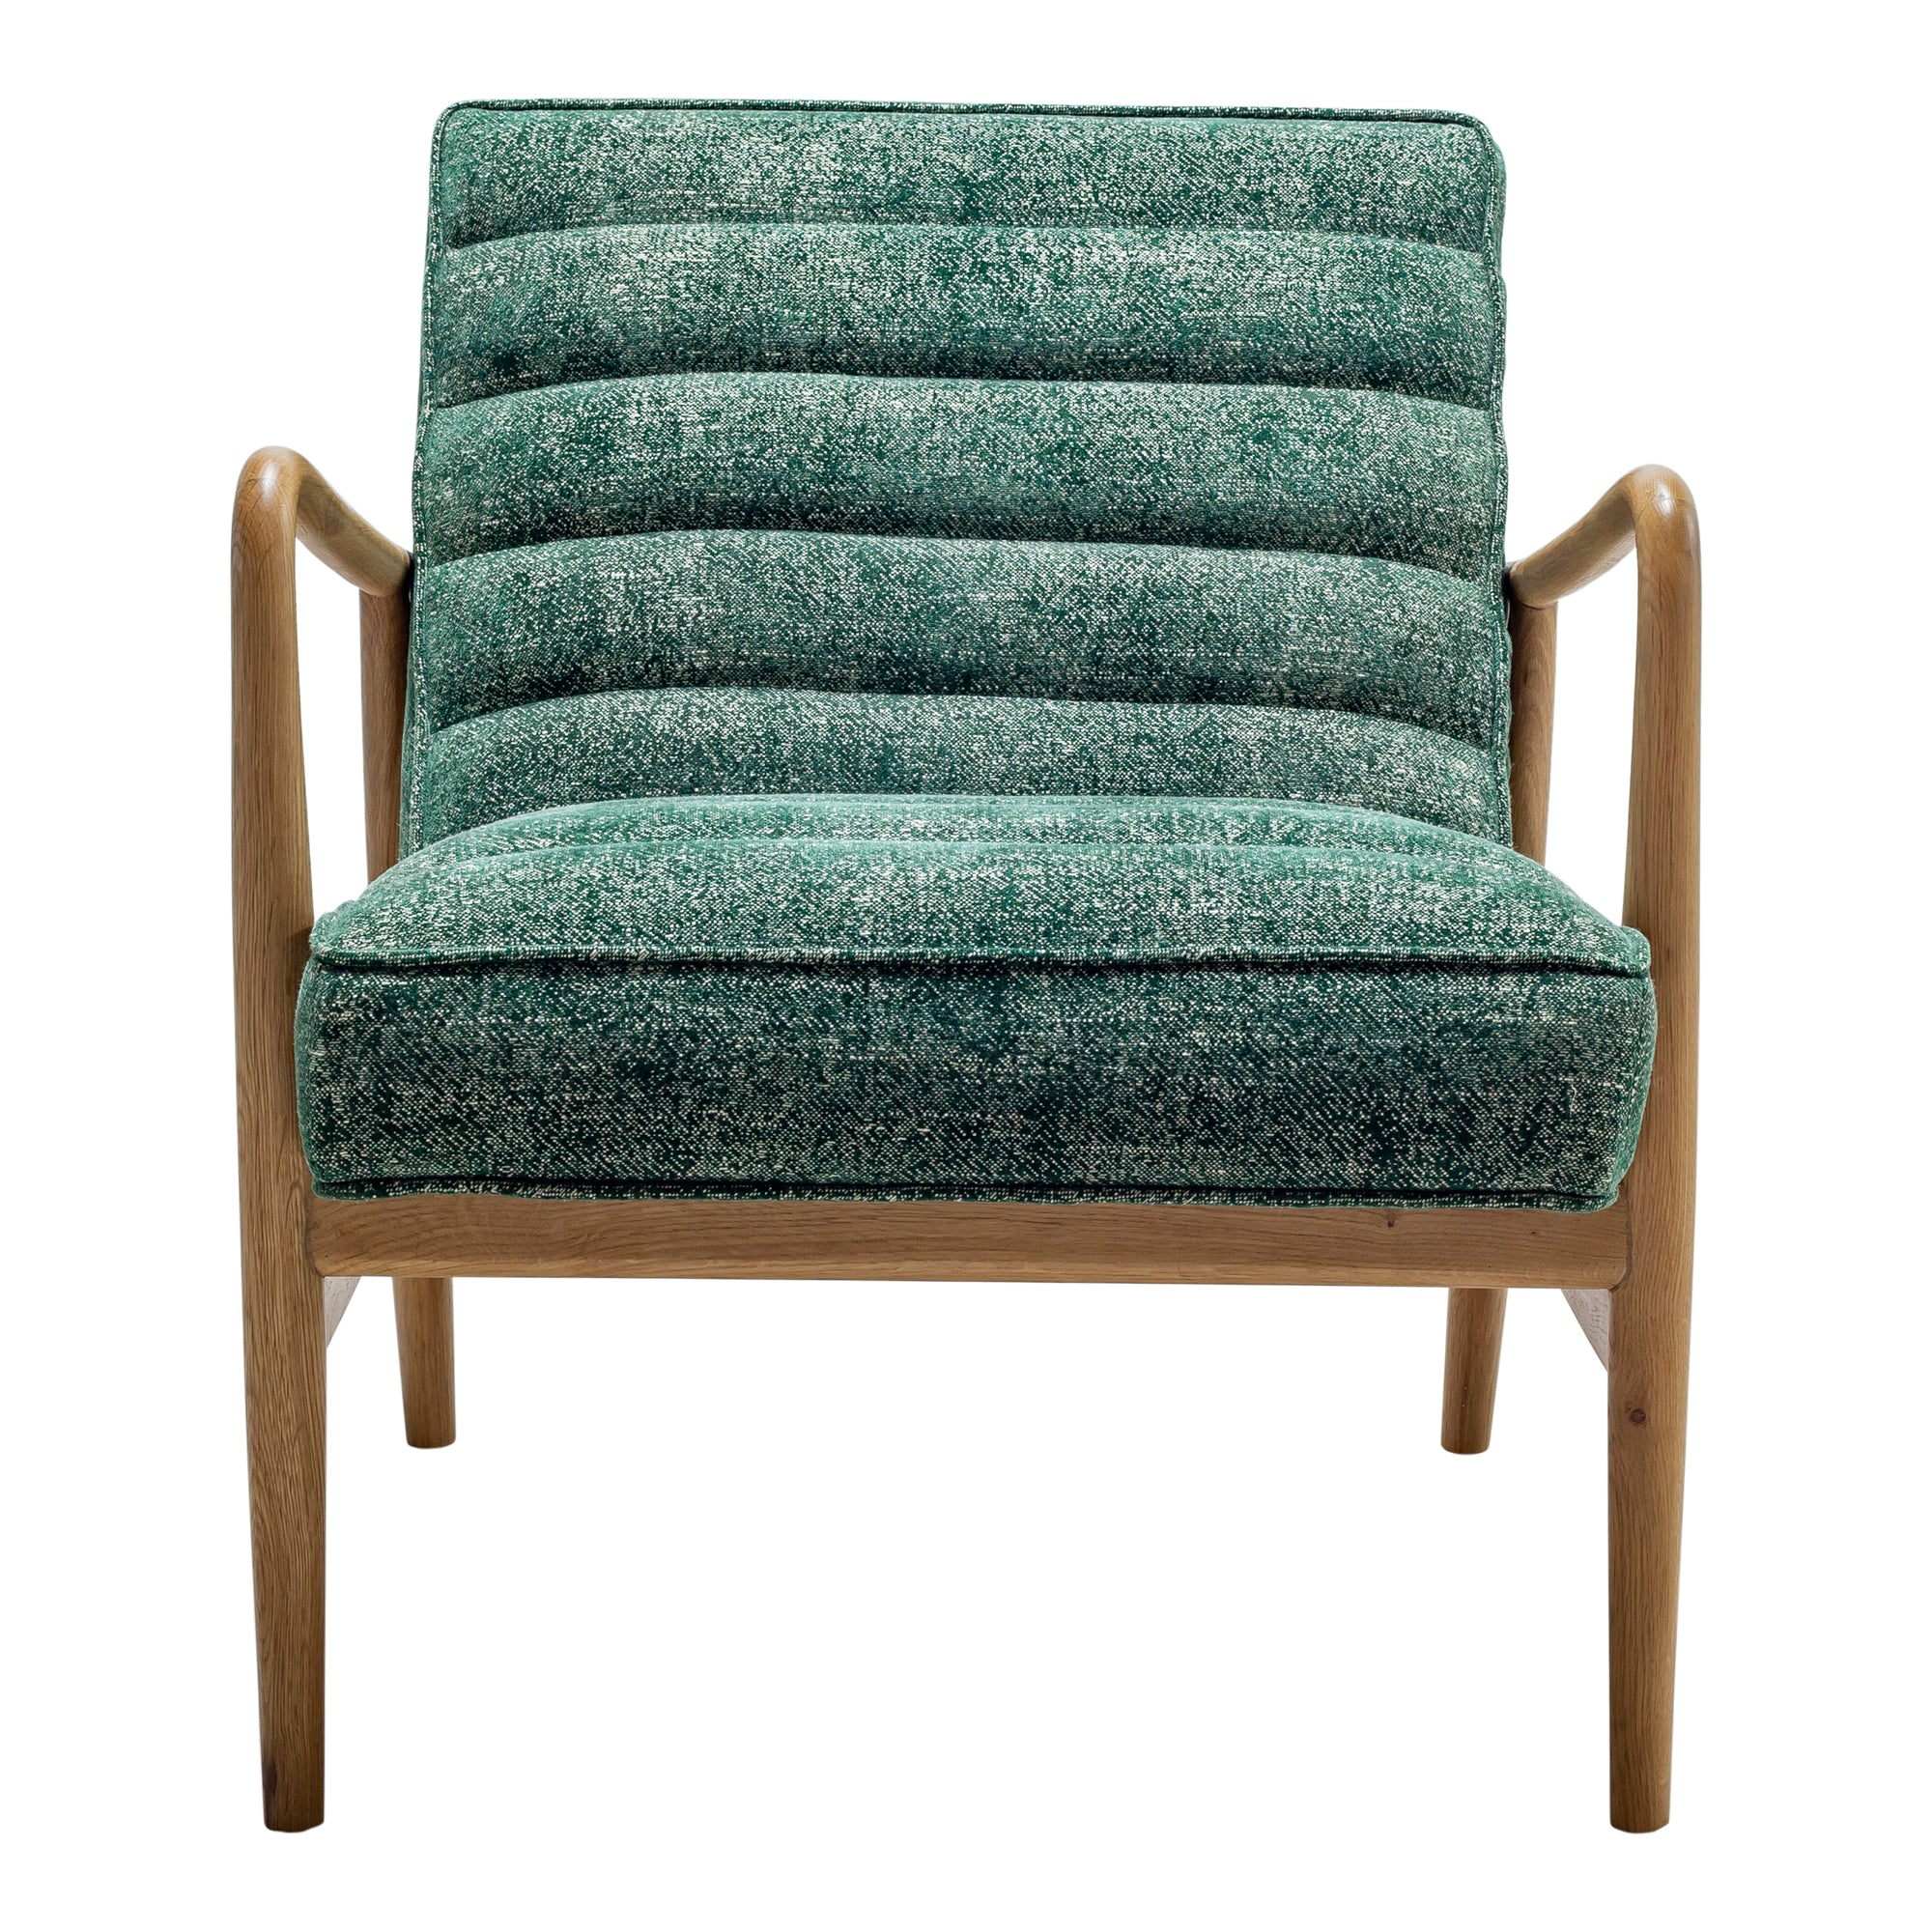 Adeline accent chair, green - Tops-Dress